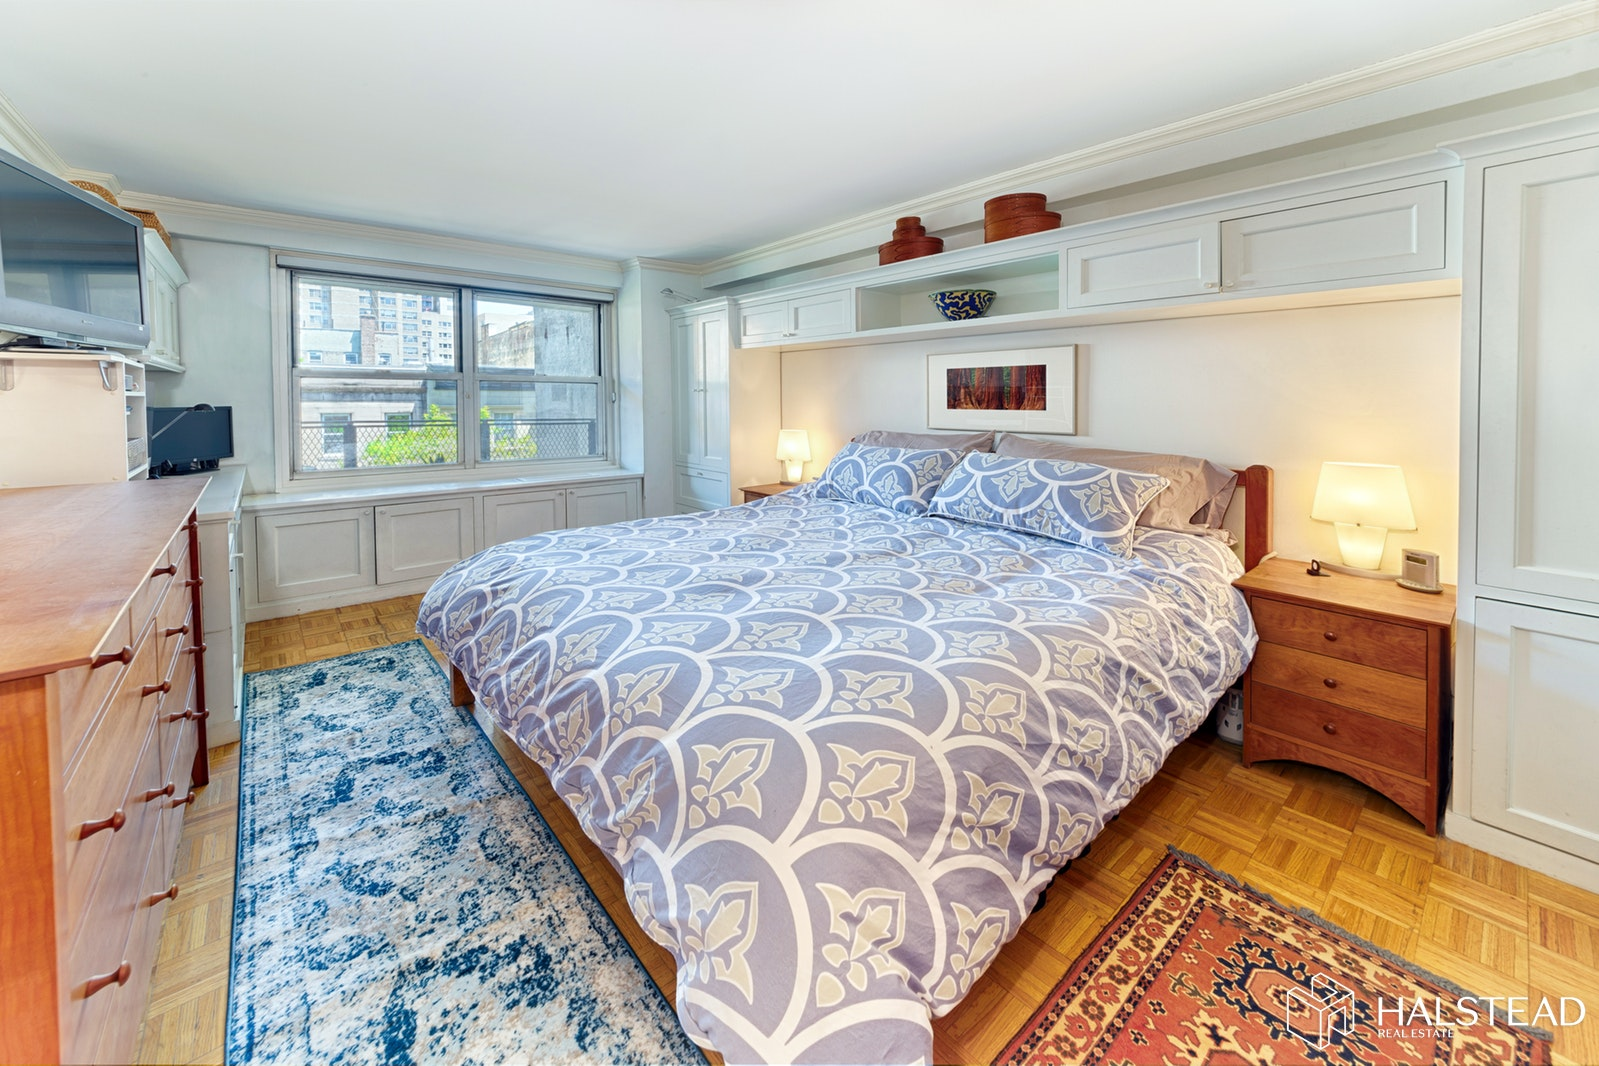 444 East 84th Street 5f, Upper East Side, NYC, 10028, $1,025,000, Property For Sale, Halstead Real Estate, Photo 3